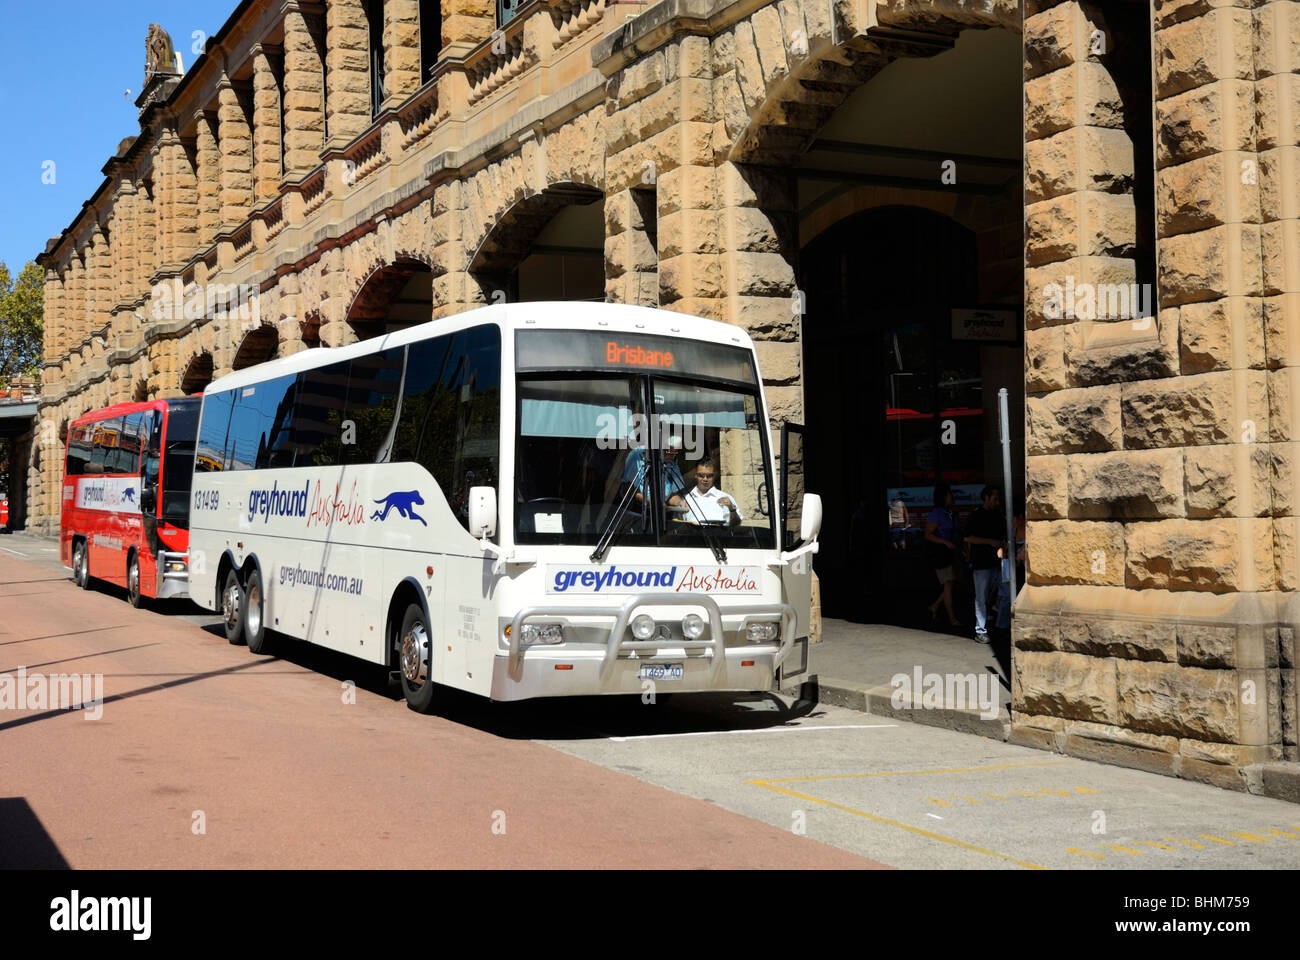 Greyhound long distance express bus / coach, waiting at the coach station. - Stock Image